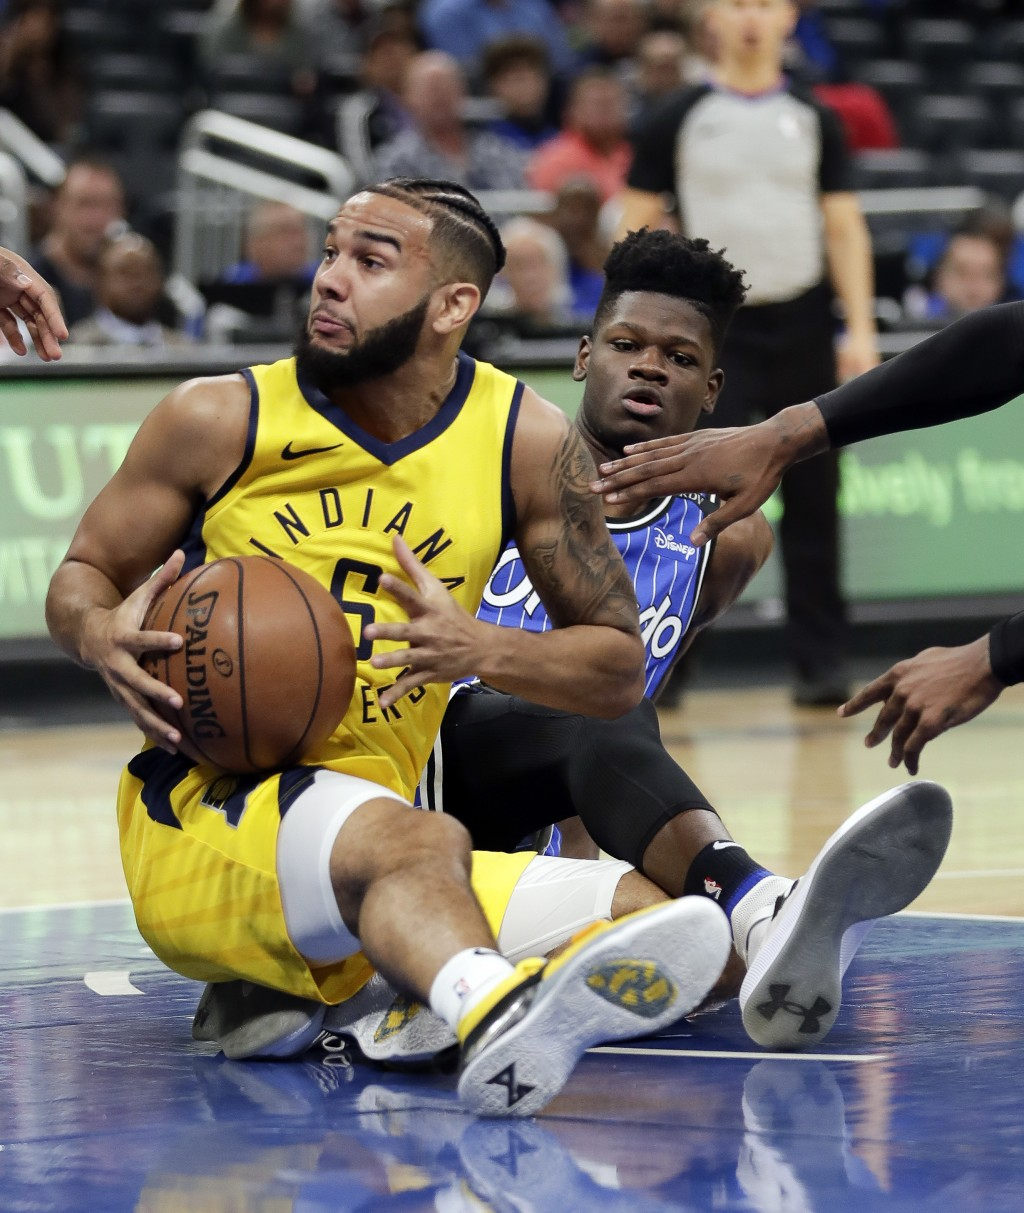 Indiana Pacers' Cory Joseph, left, looks to pass the ball after getting tangled up with Orlando Magic's Mo Bamba during the first half of an NBA baske...